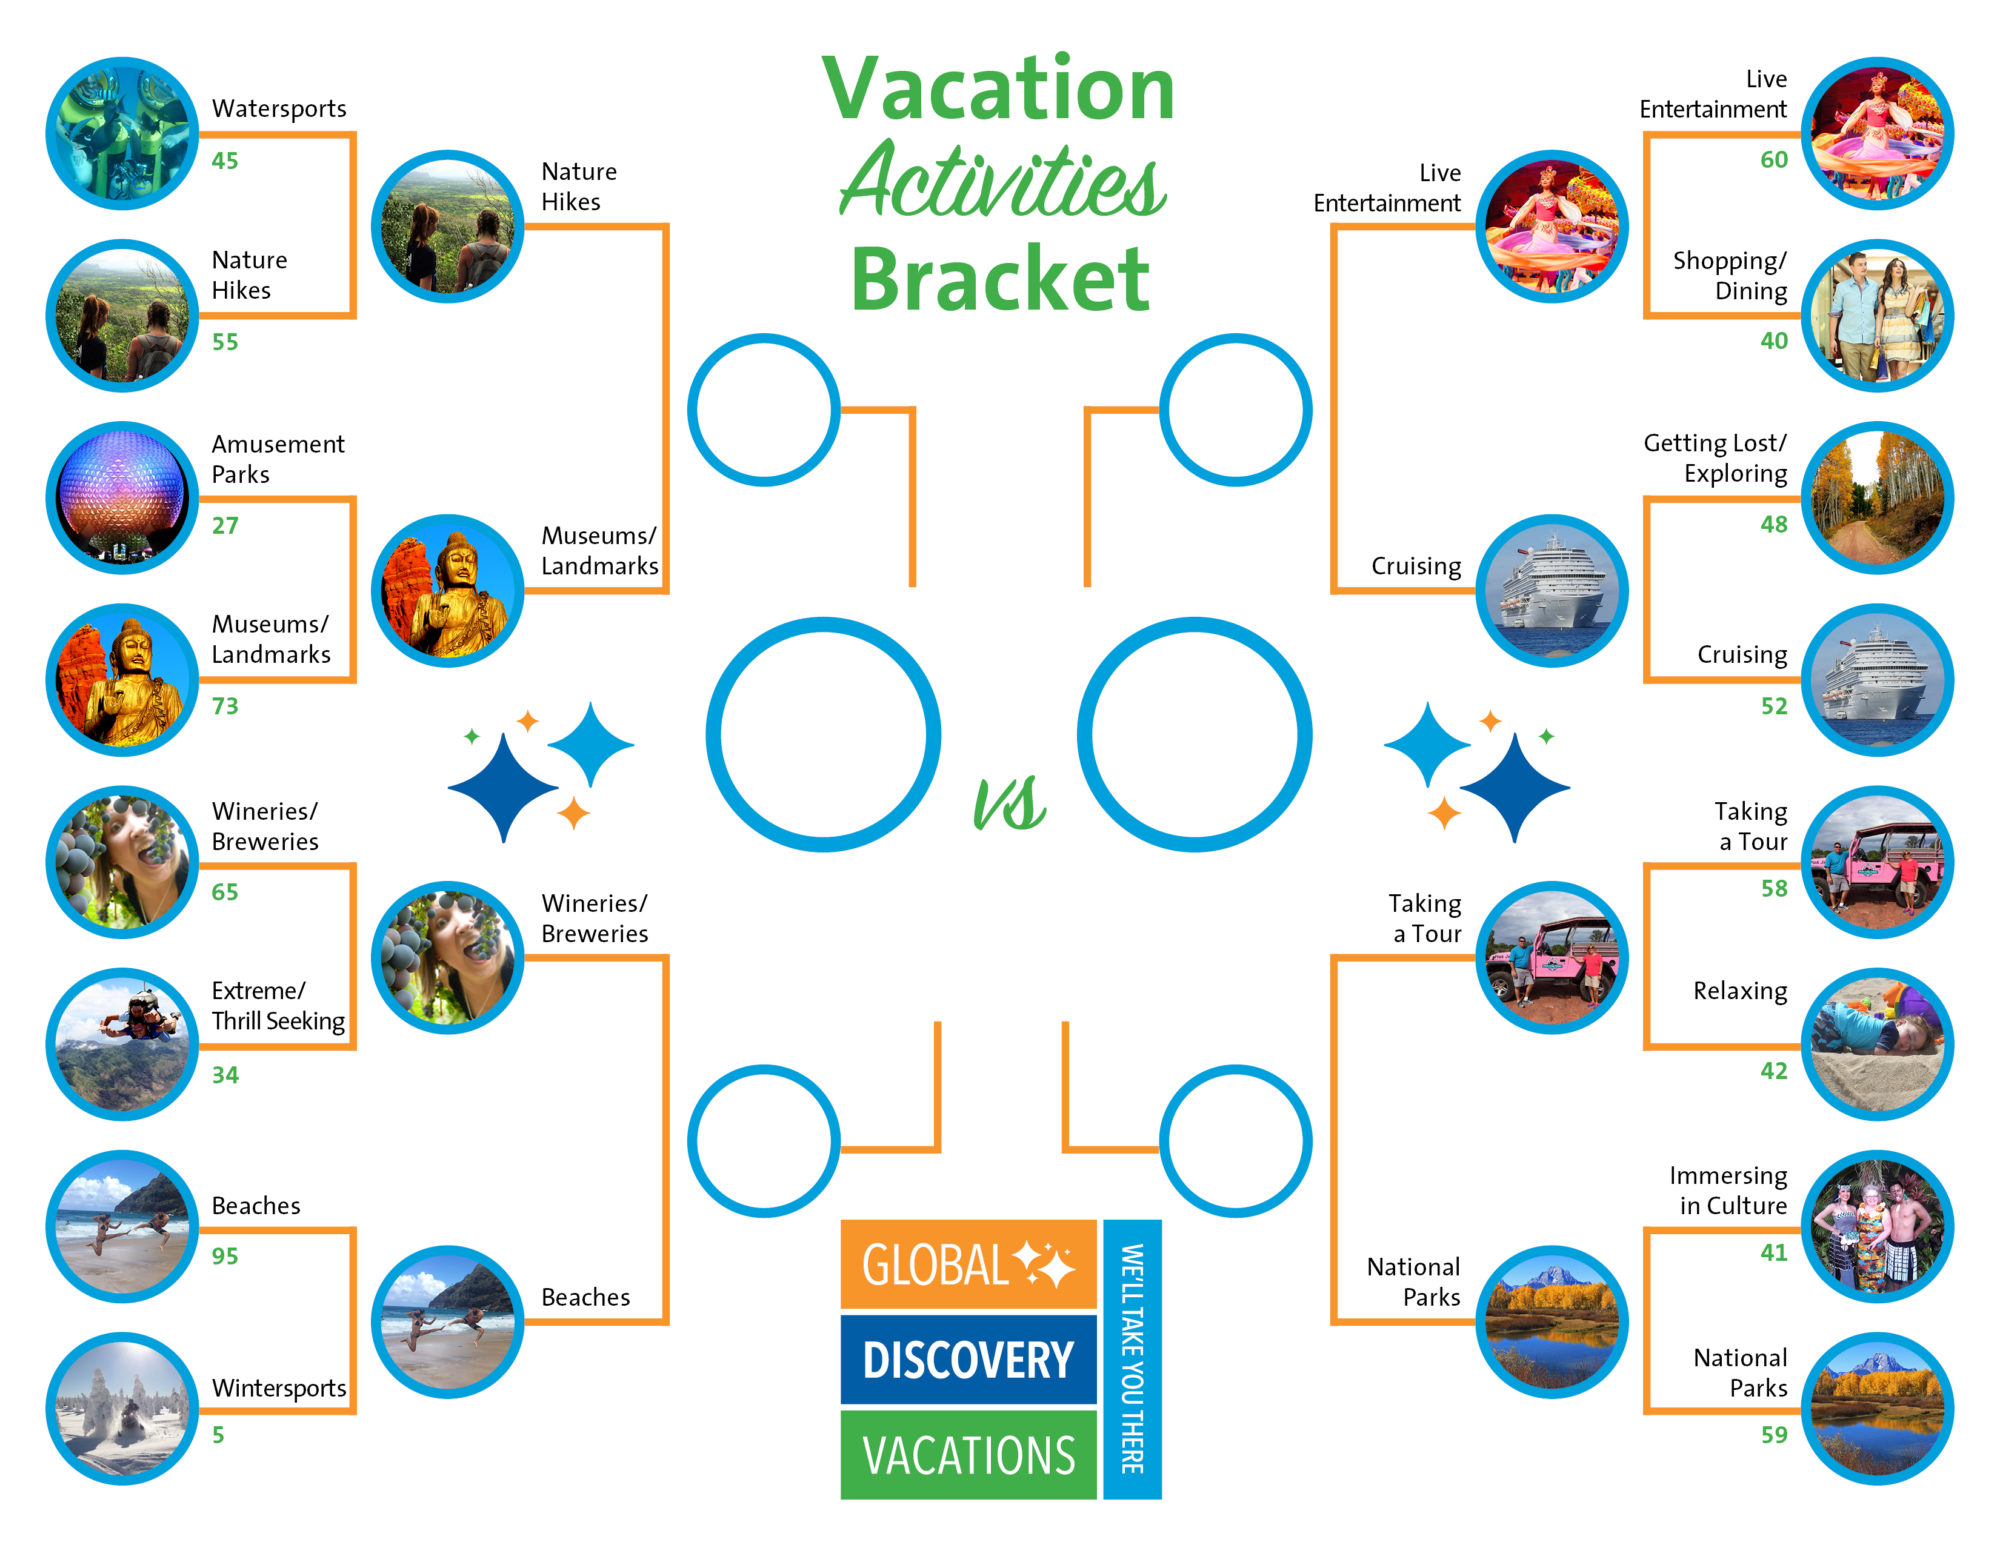 global discovery vacations attractions bracket 2